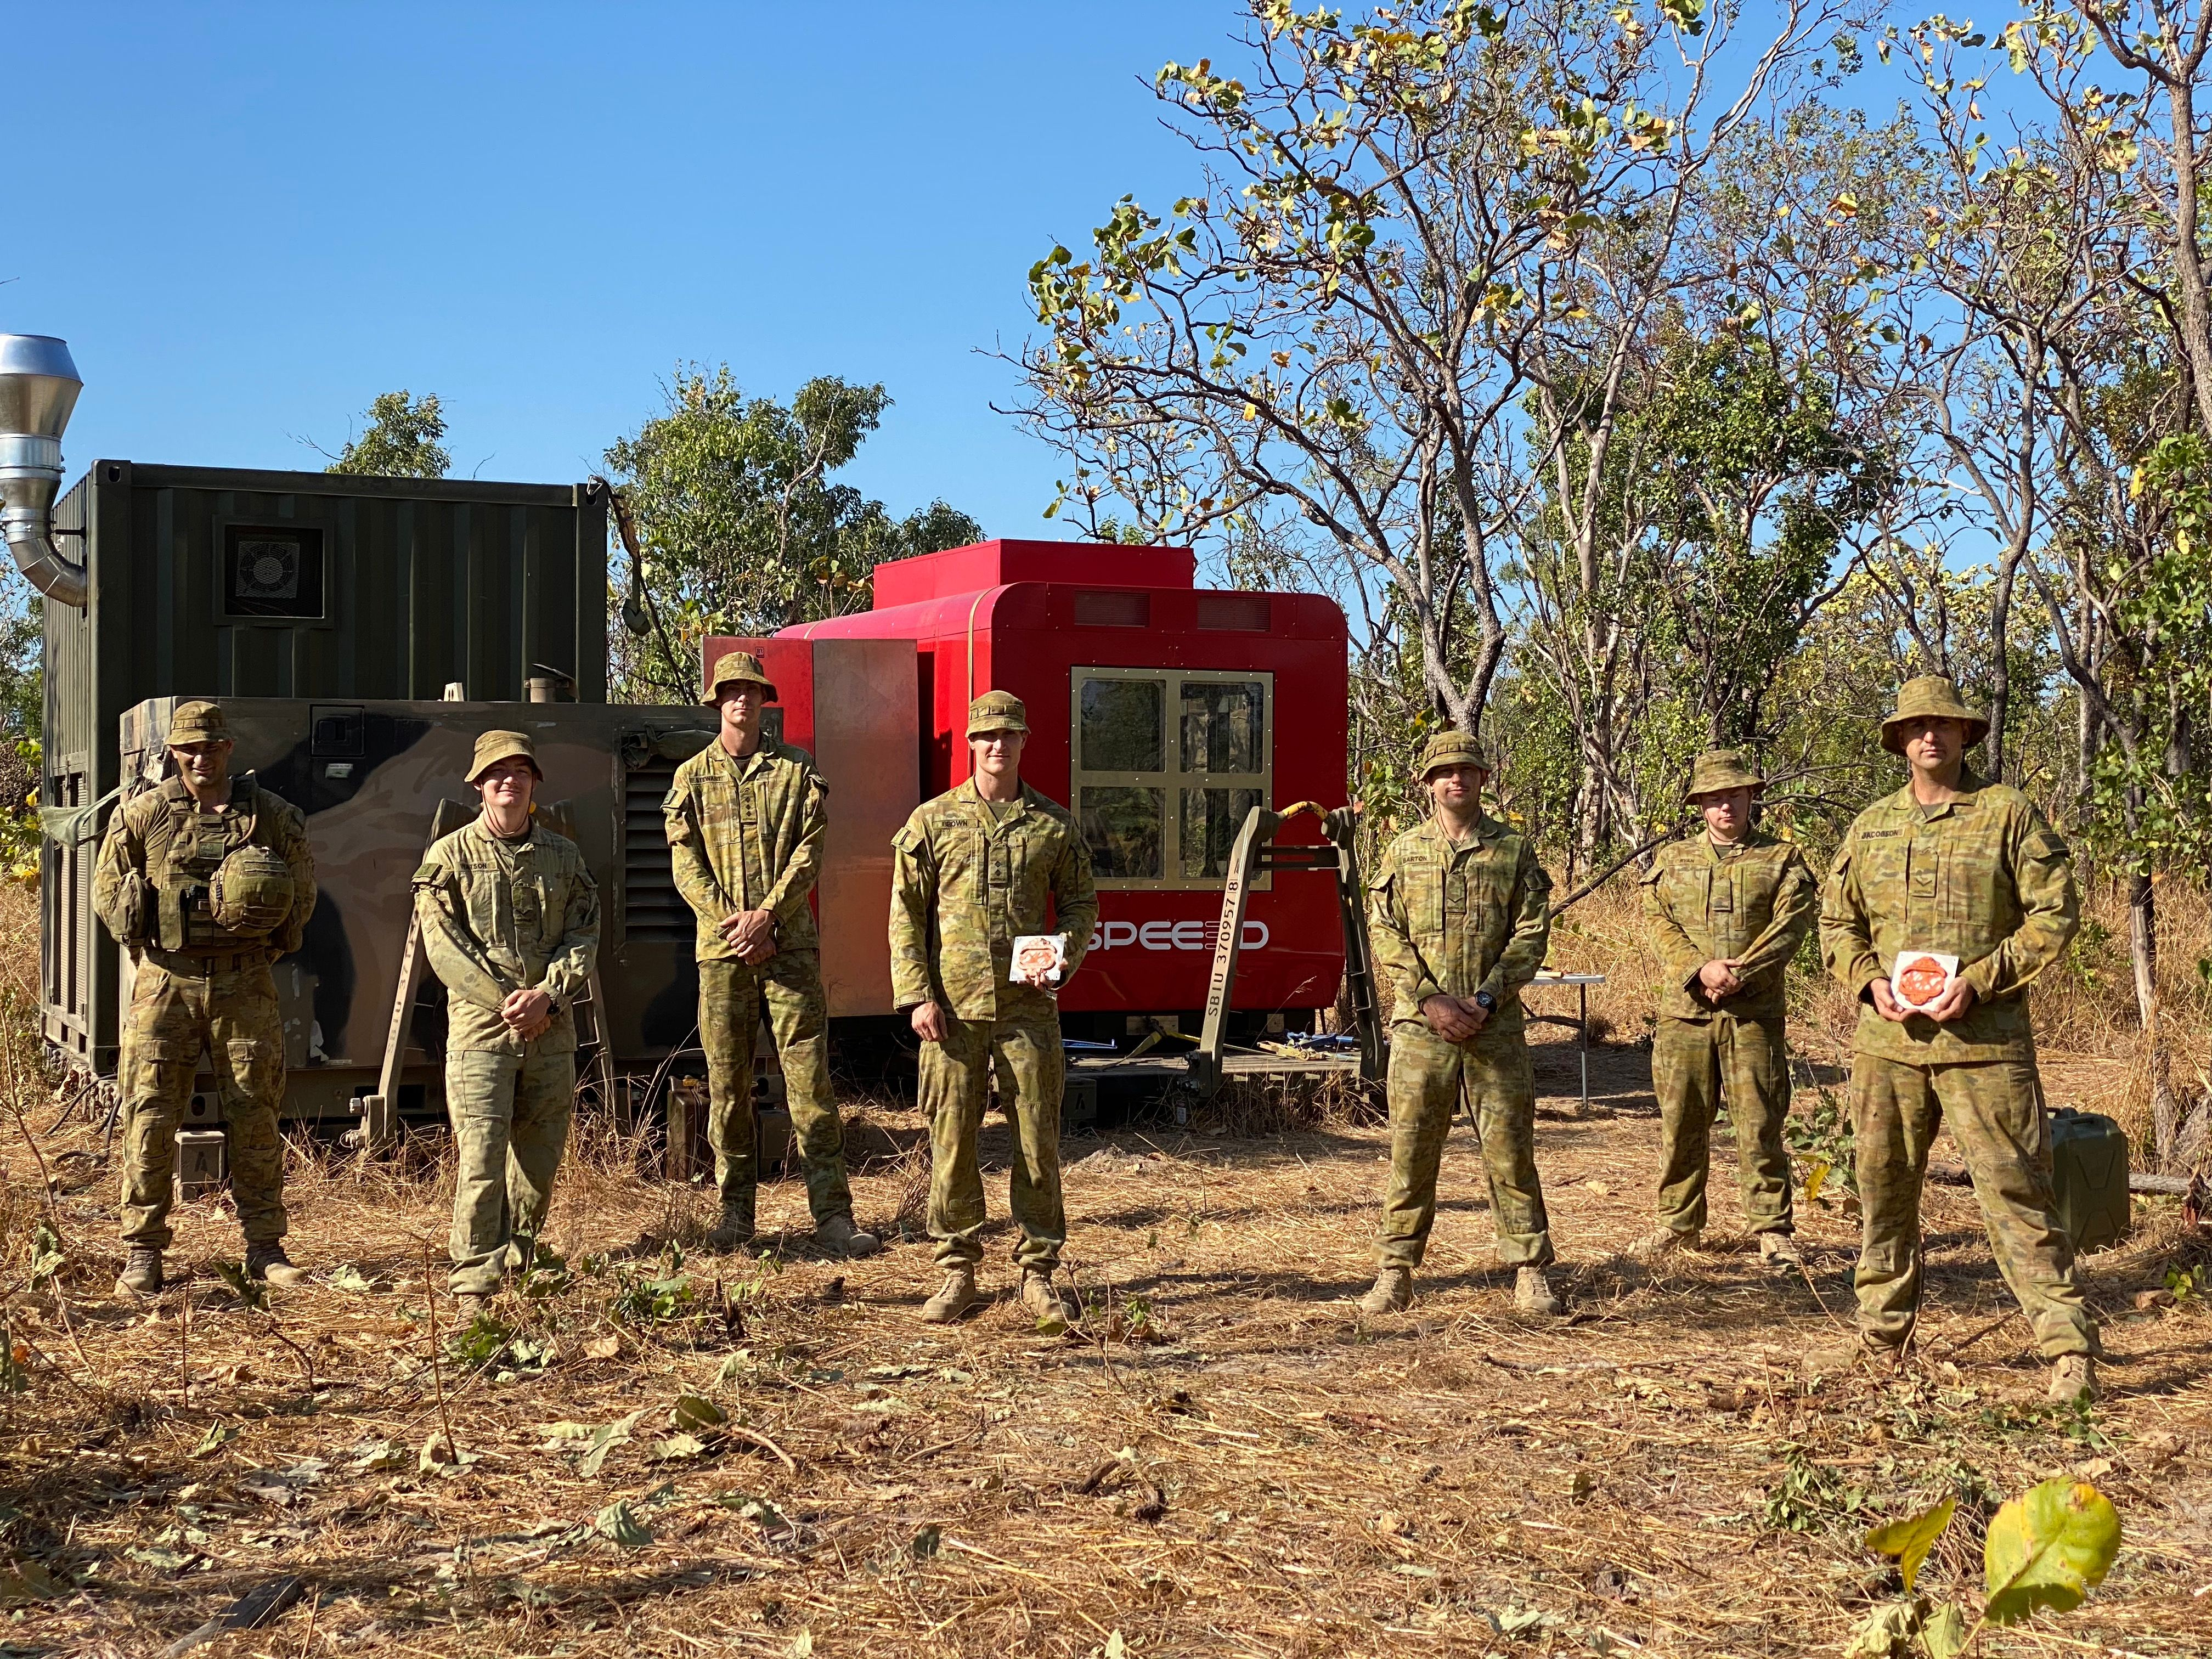 The group of soldiers (pictured) from the Australian Army's 1st Combat Service Support Battalion, which operated the 3D printer during the trial. Picture via SPEE3D.